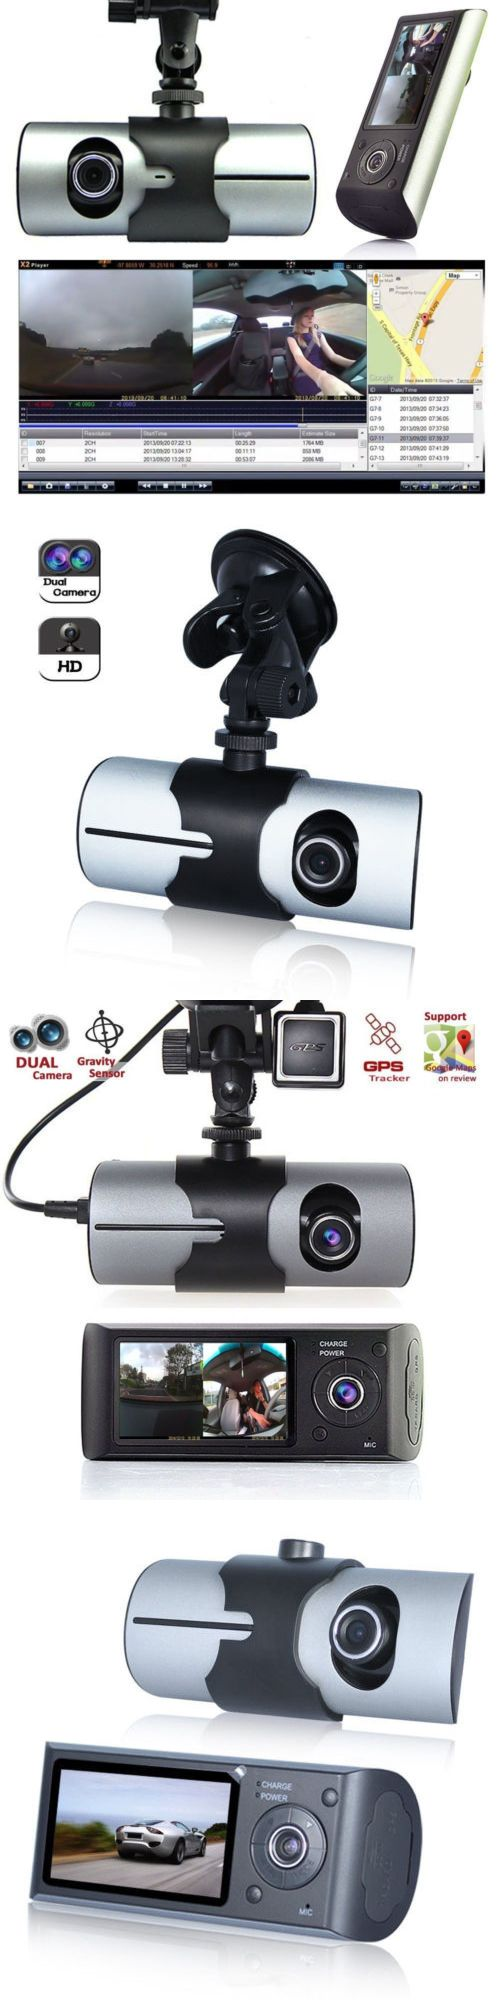 Other Car Video: 2.7 Vehicle 1080P Car Dvr Camera Video Recorder Dash Cam G-Sensor Gps Dual Lens -> BUY IT NOW ONLY: $44.99 on eBay!